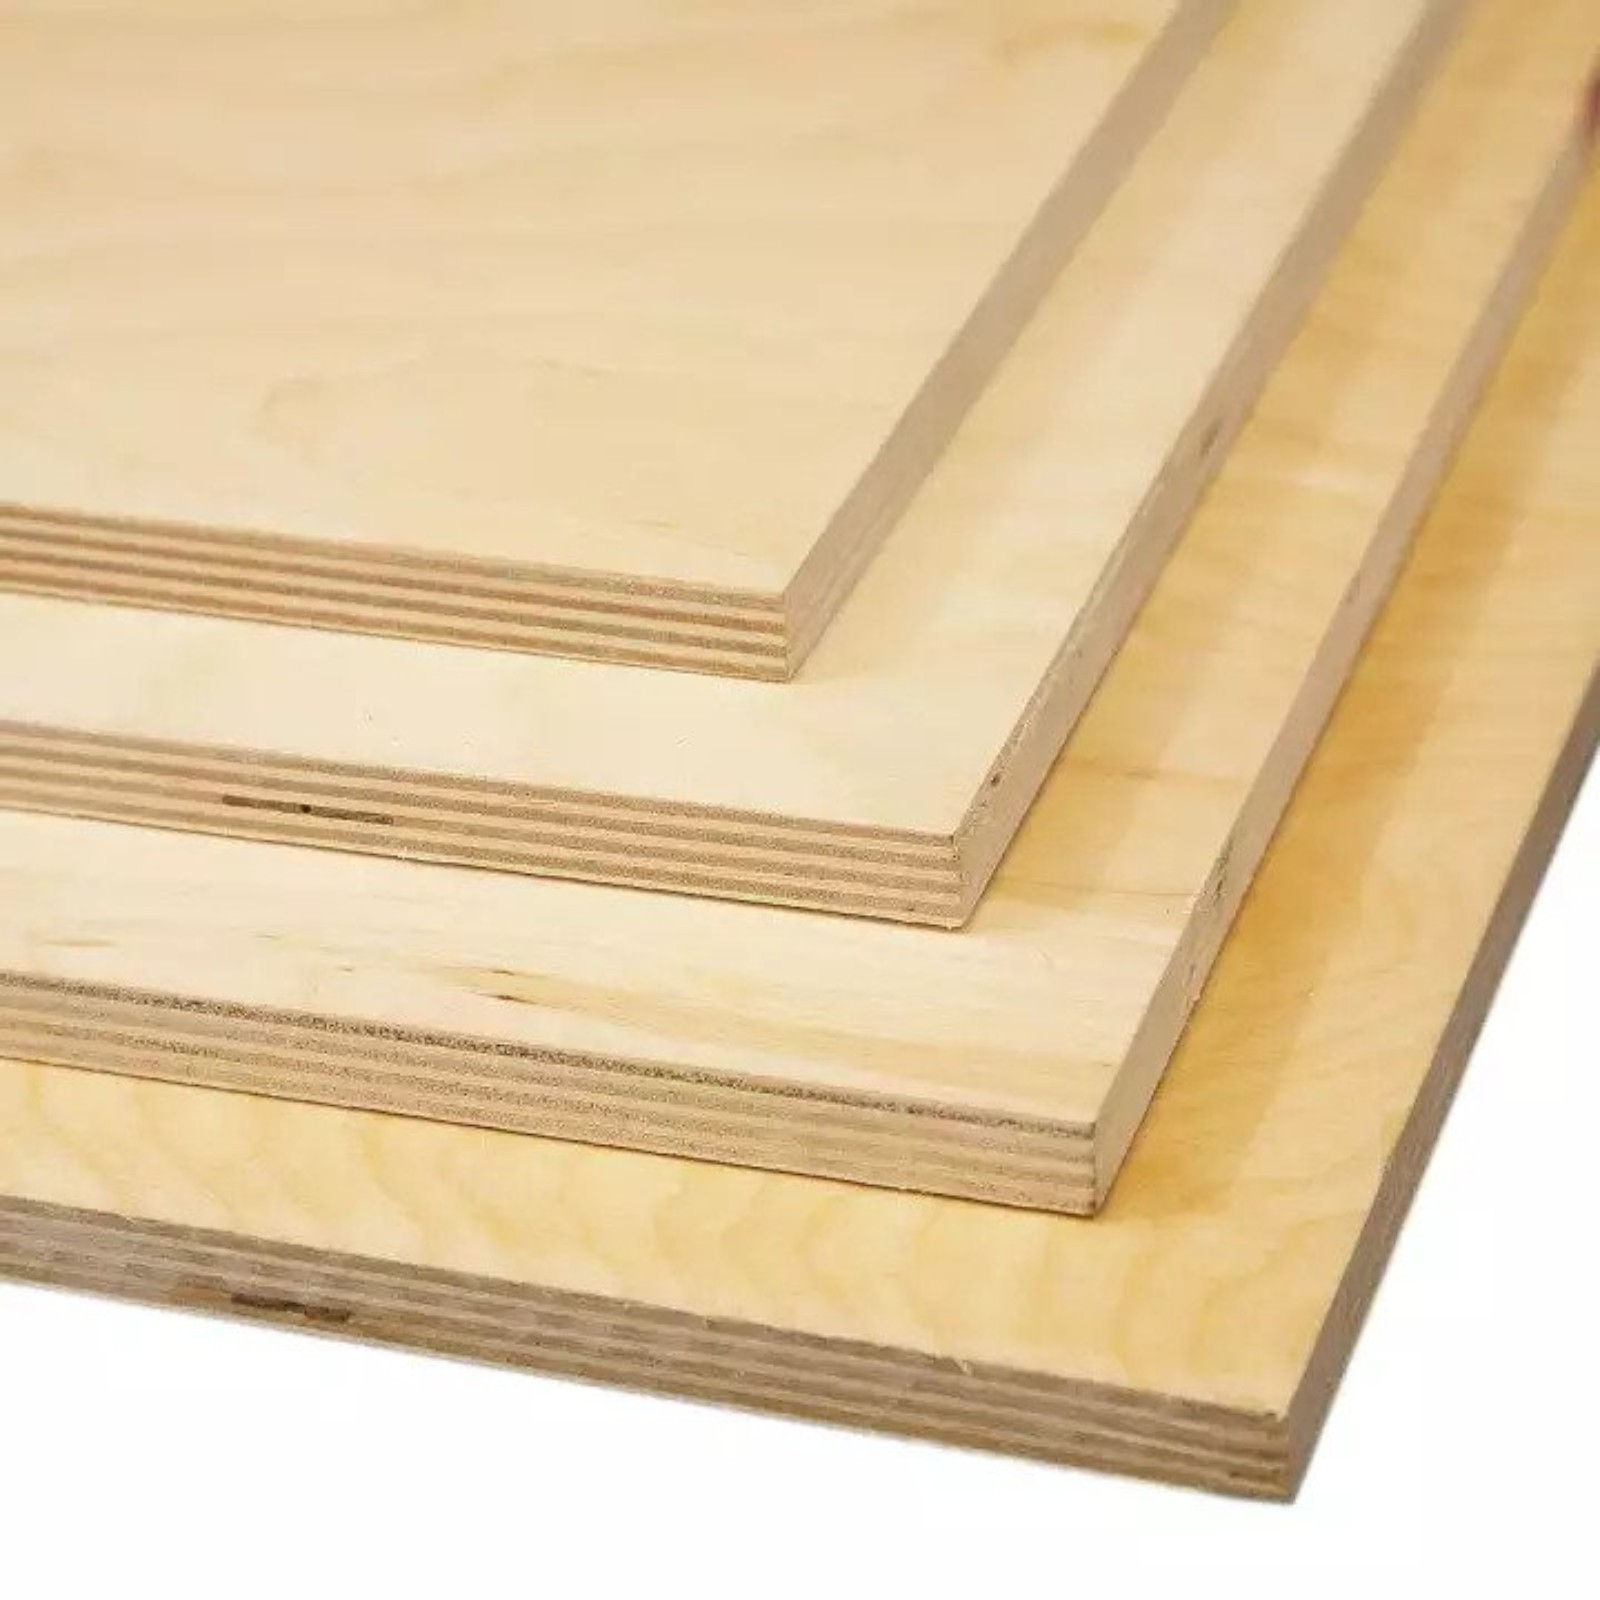 Packing Grade Plywood B2